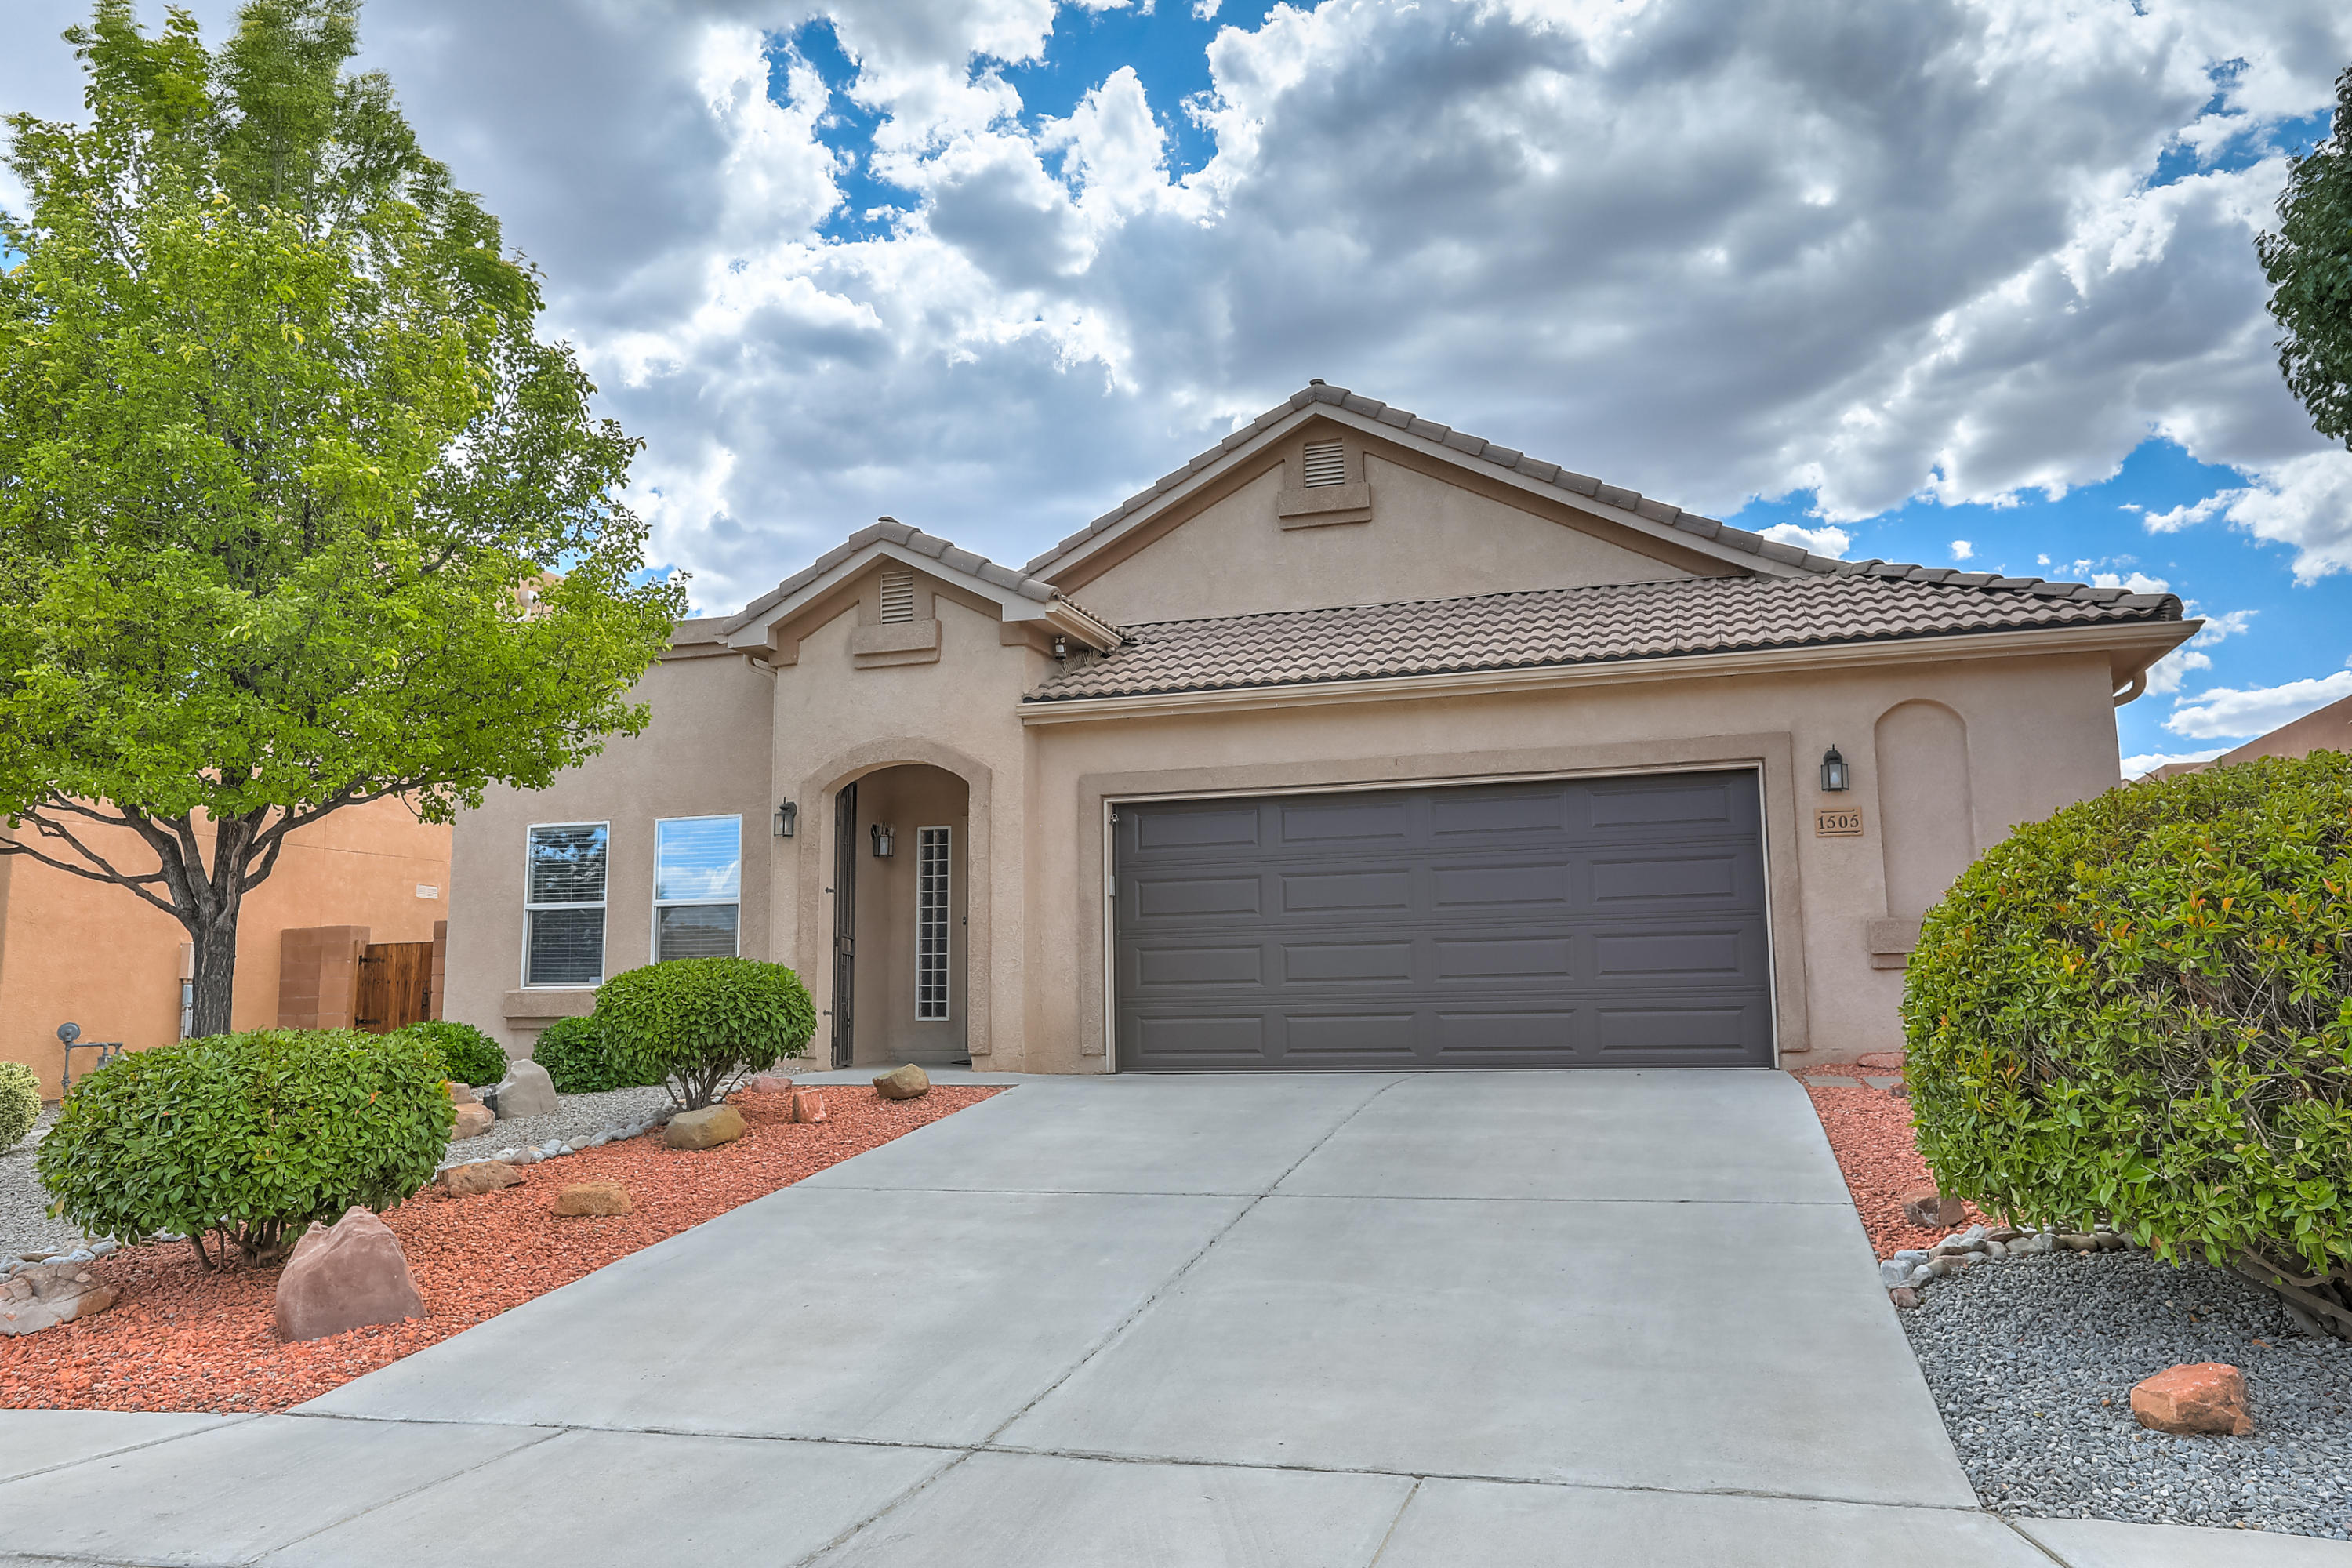 Hurry to see this 1 story stunner in desirable Cabezon Subd. in S. Rio Rancho. The home has it all!  Open floor plan w/ kitchen, dining and great room all one contiguous space. Kitchen has new dishwasher & micro.  2 pantries & lots of counter space. Raised beamed ceiling in great room w/ cozy fireplace. Split floor plan w/ spacious owners suite w/ luxe ensuite bath w/ garden tub and separate shower. Two generously sized guest rooms w/ shared bathroom. 4th possible bedroom is also the perfect office or play space. Backyard is an oasis w/ small gunite pool w/ new heater, cabana & putting green. Paid solar means virtually no electric bill!  Garage is oversized (2.5 spaces) w/ professionally installed epoxy coated floor & modified ceiling to accommodate a car lift - high speed door lift too!